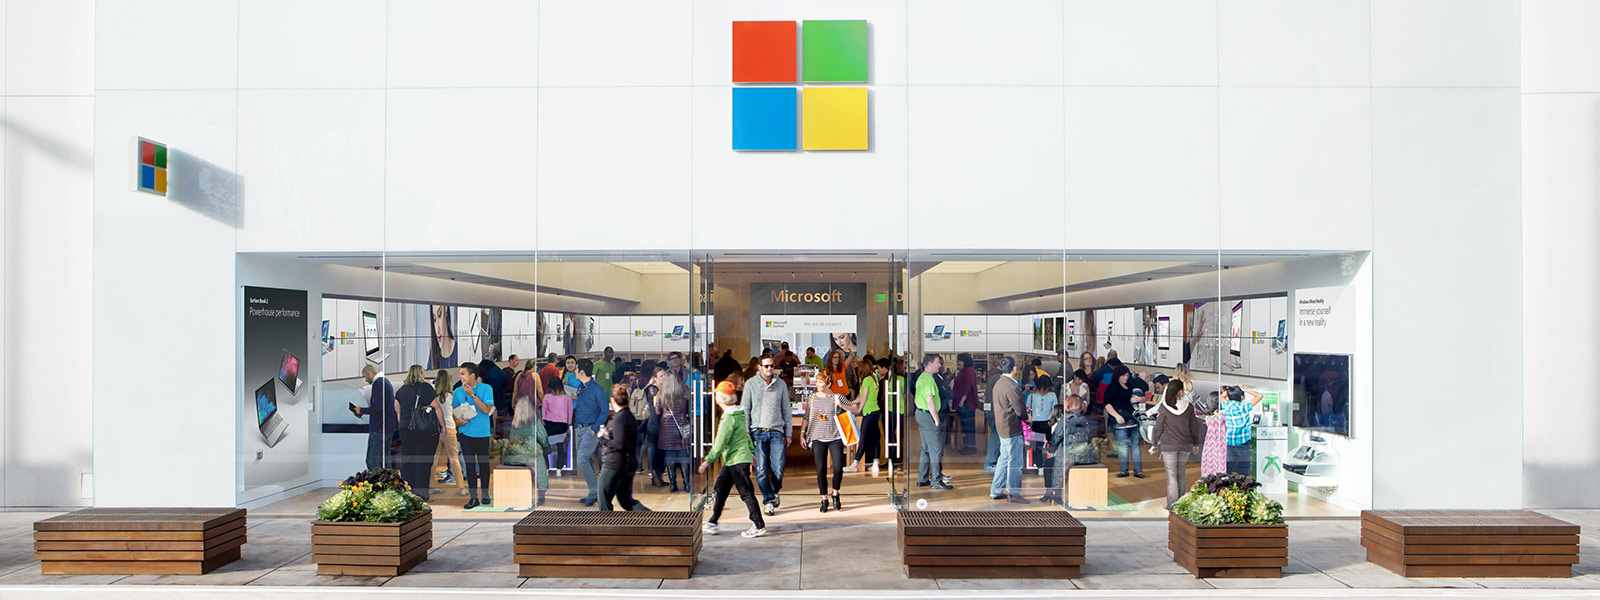 A Microsoft Store filled with customers spilling out onto the side walk